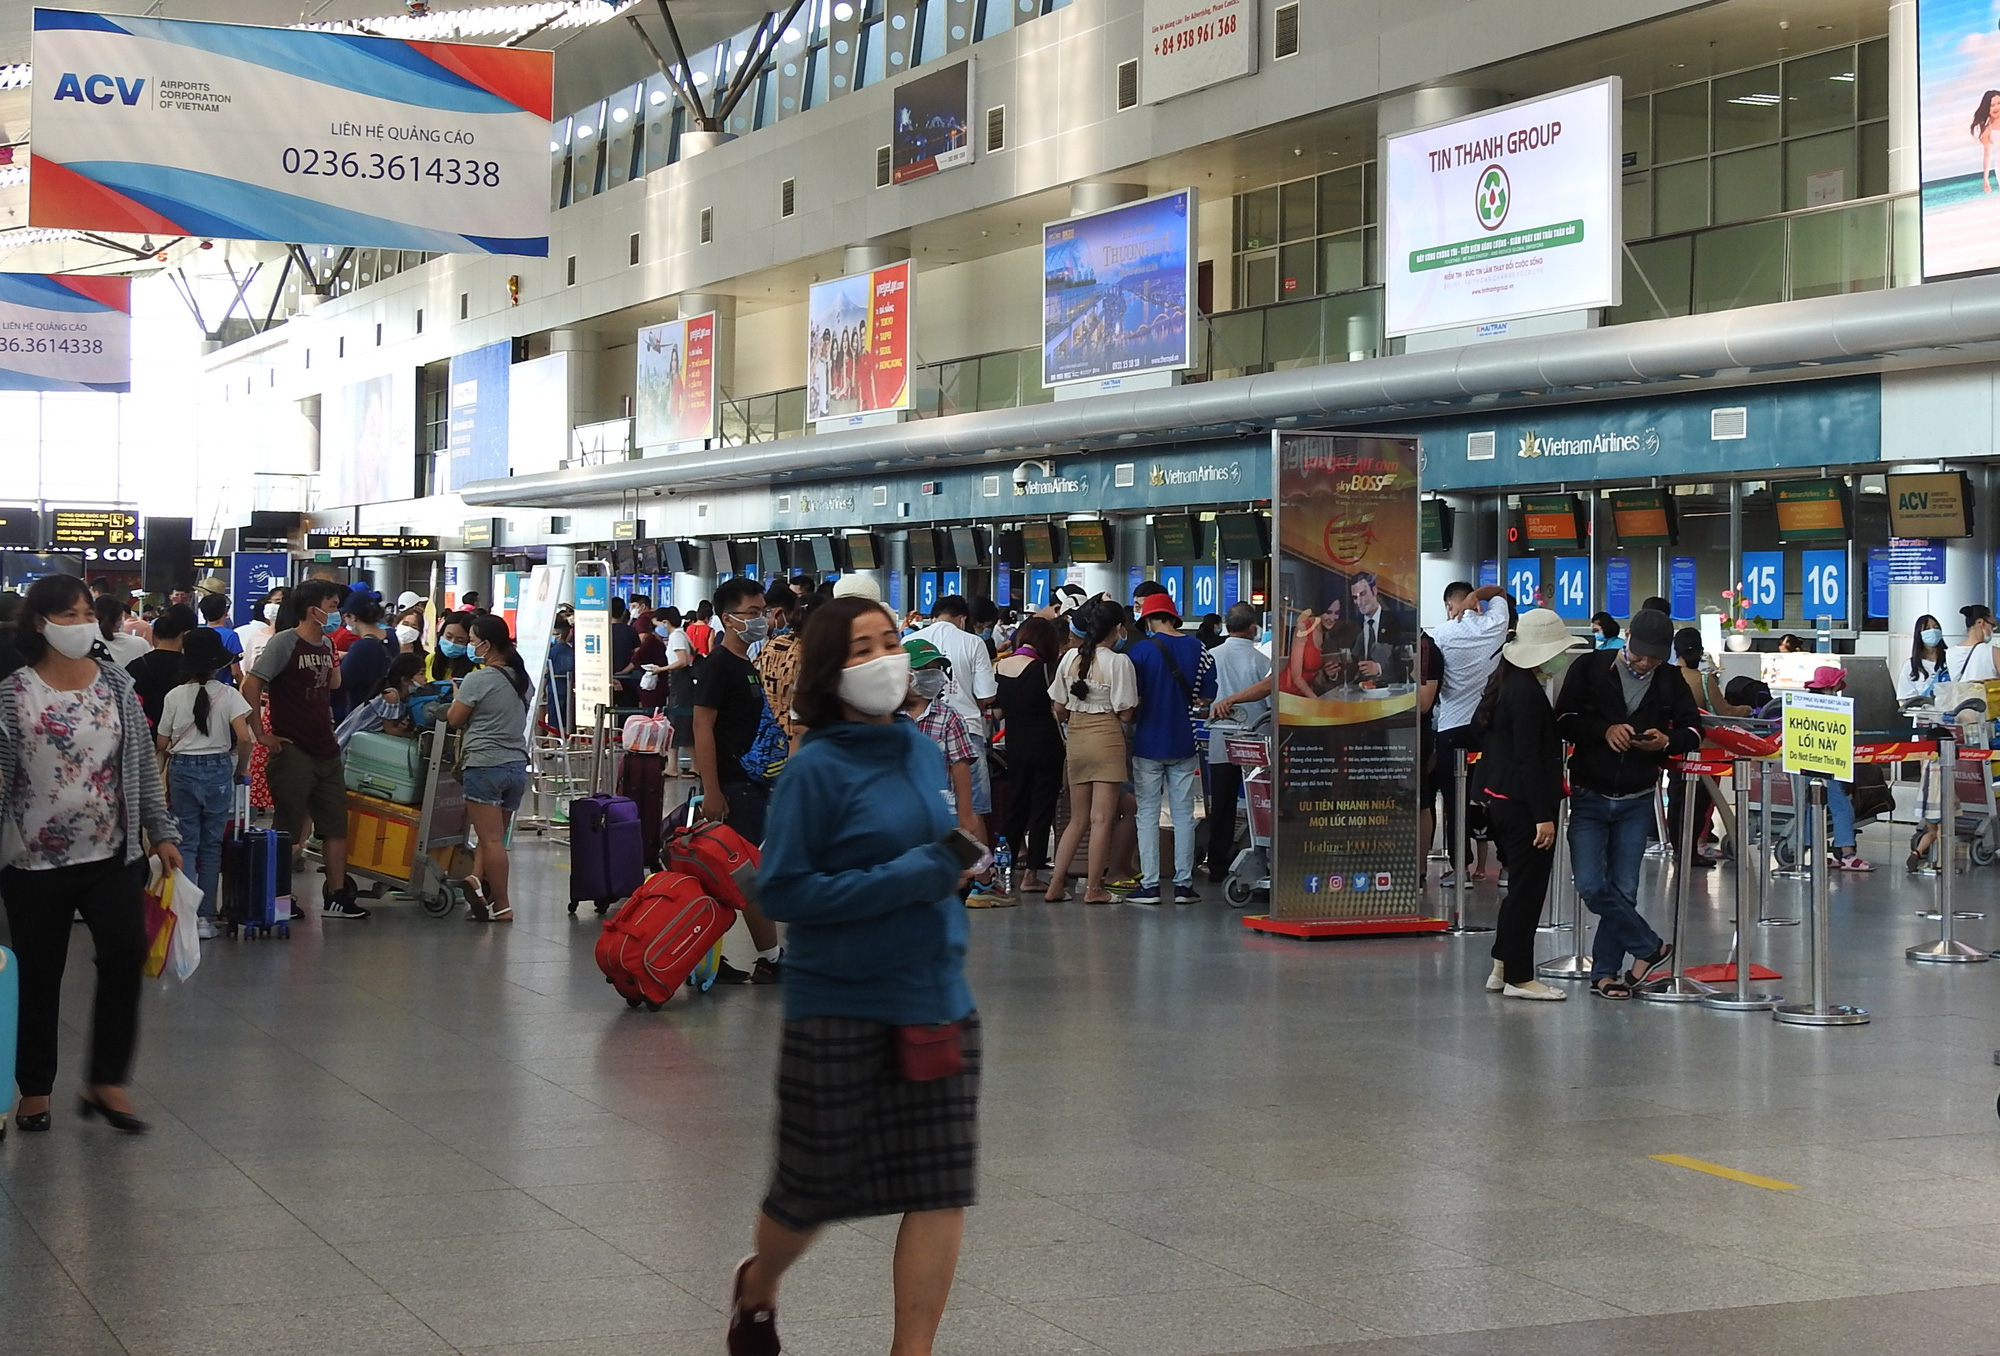 Authorities propose resumption of passenger transport to, from Da Nang